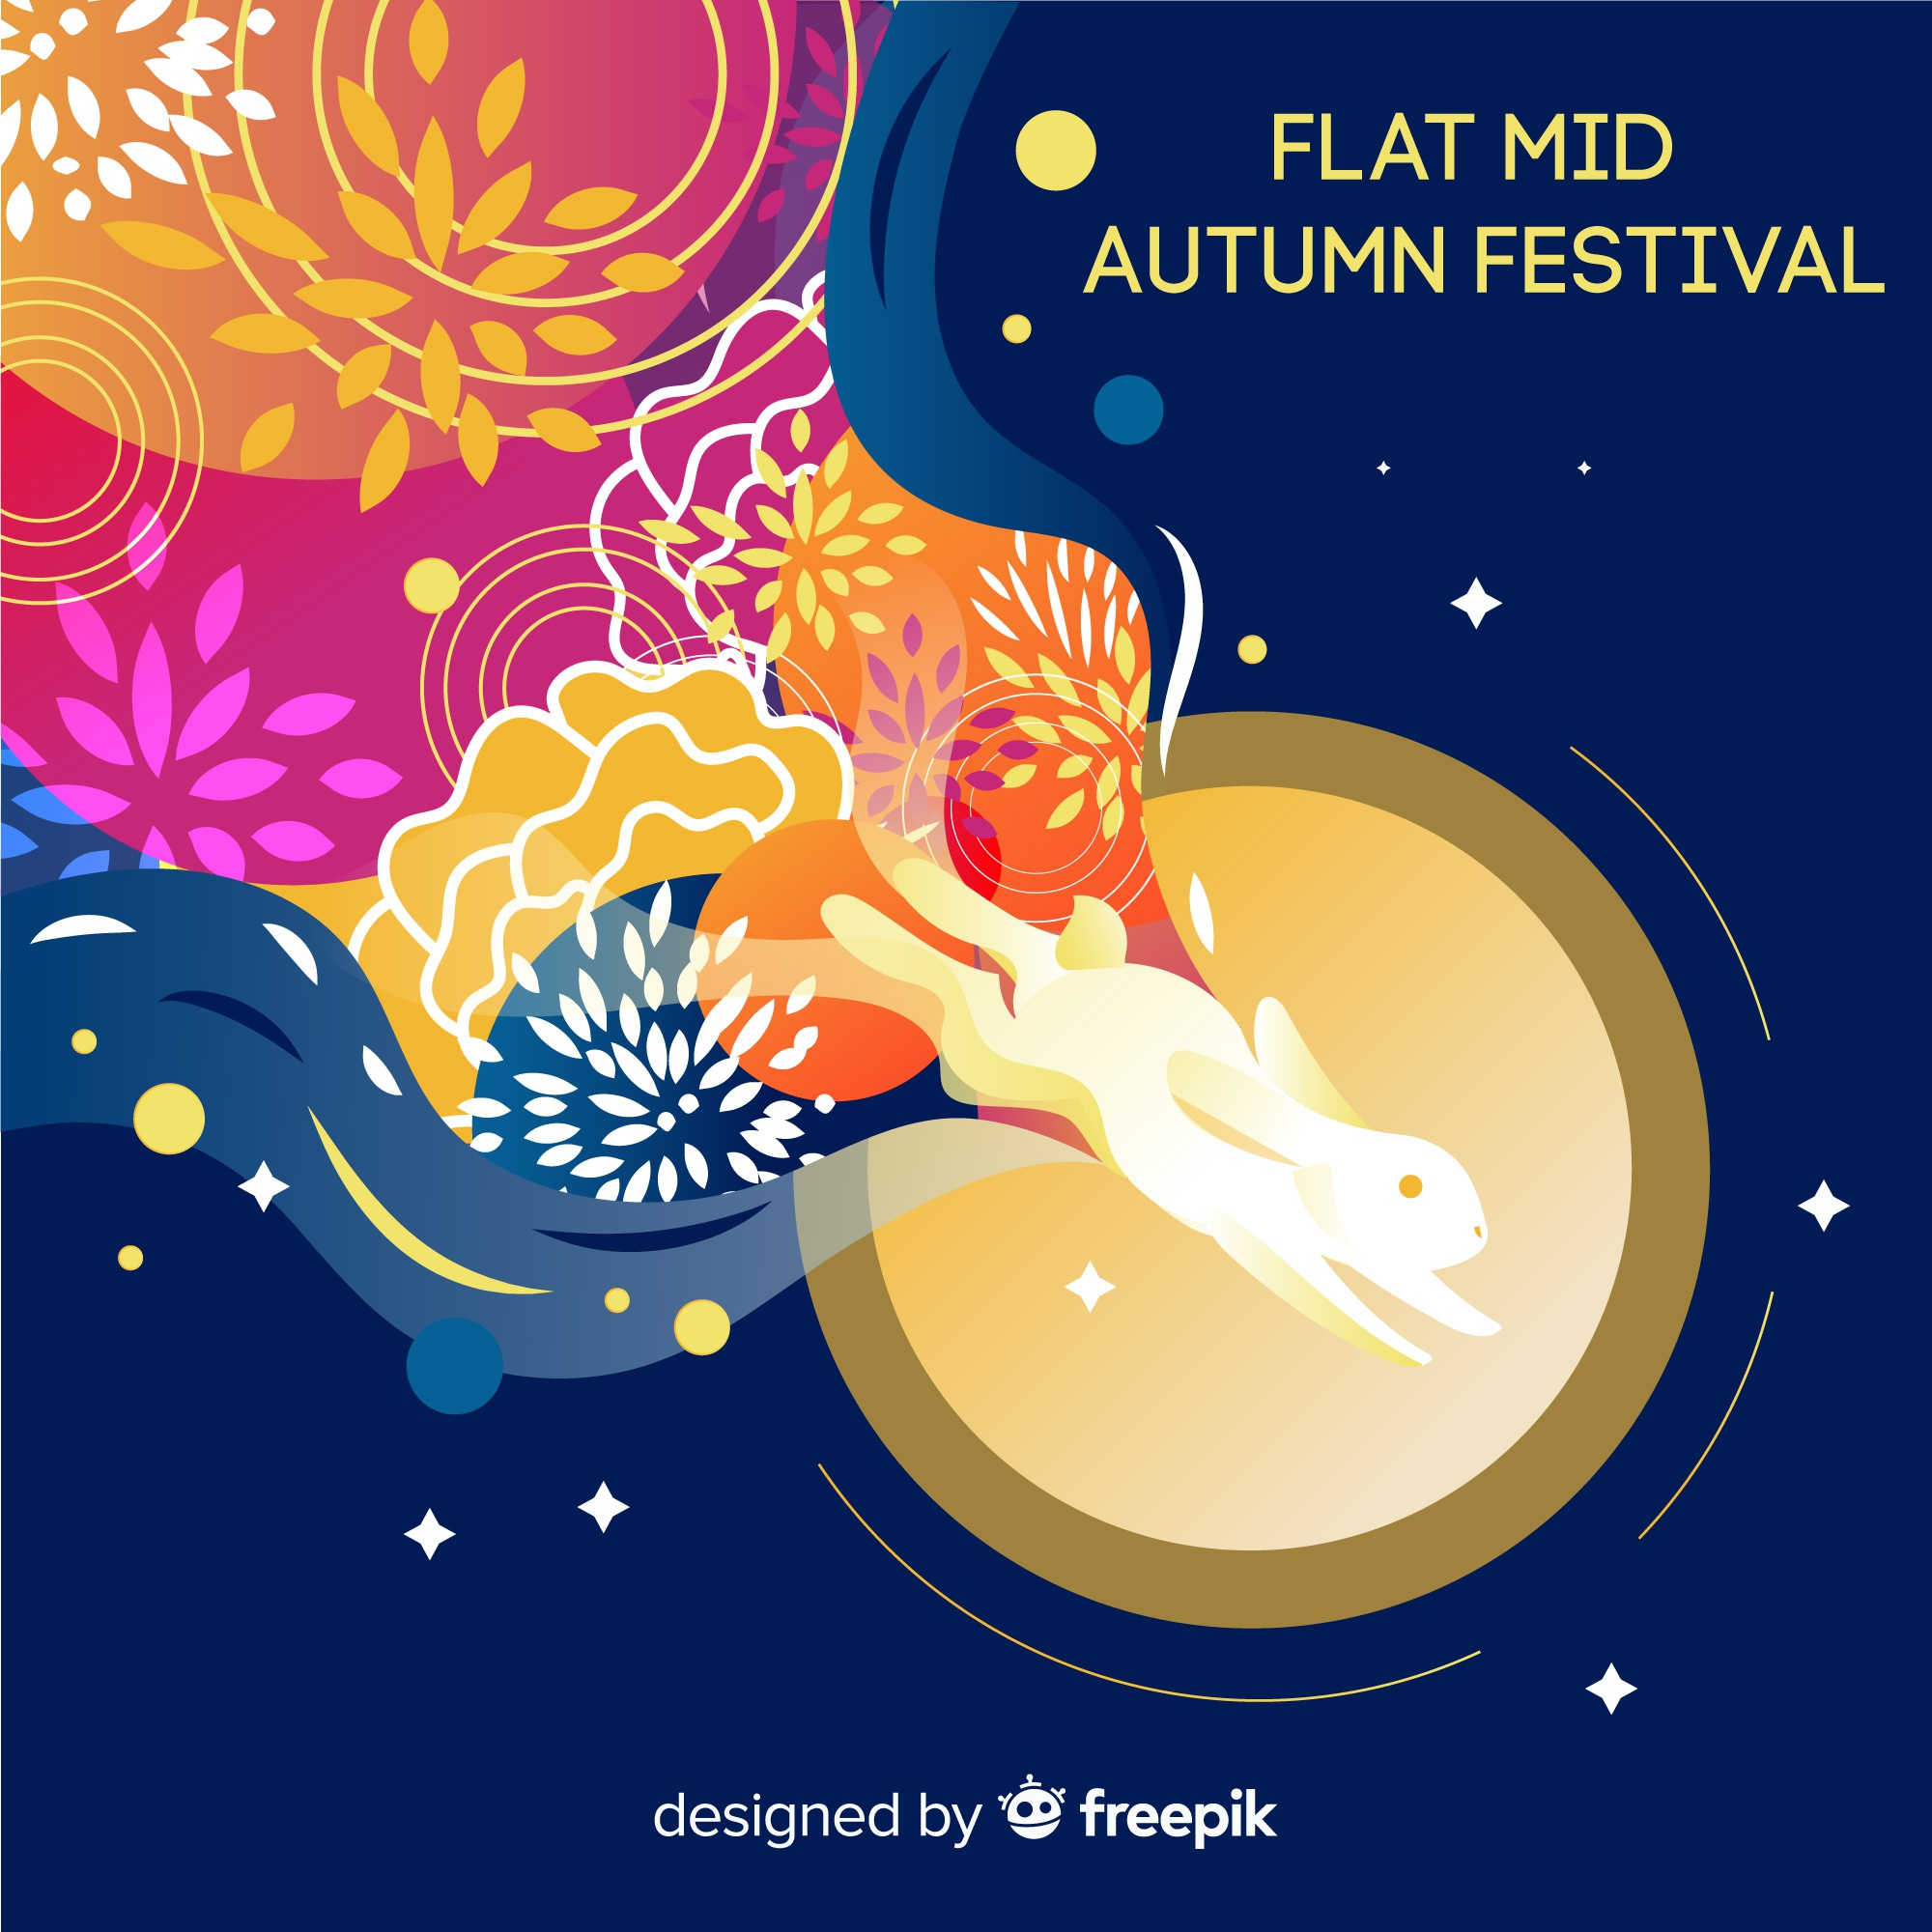 Background design for mid autumn festival